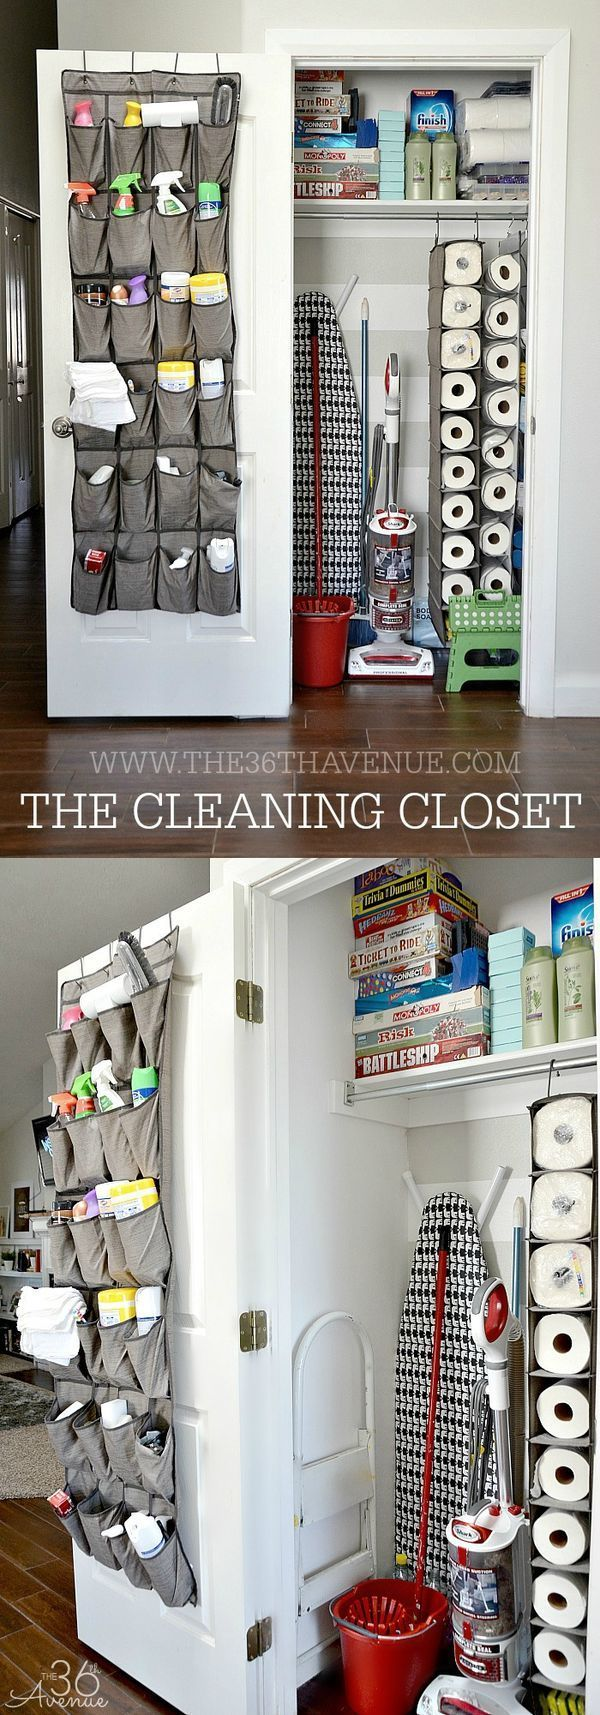 Cleaning Tips – DIY Cleaning Closet